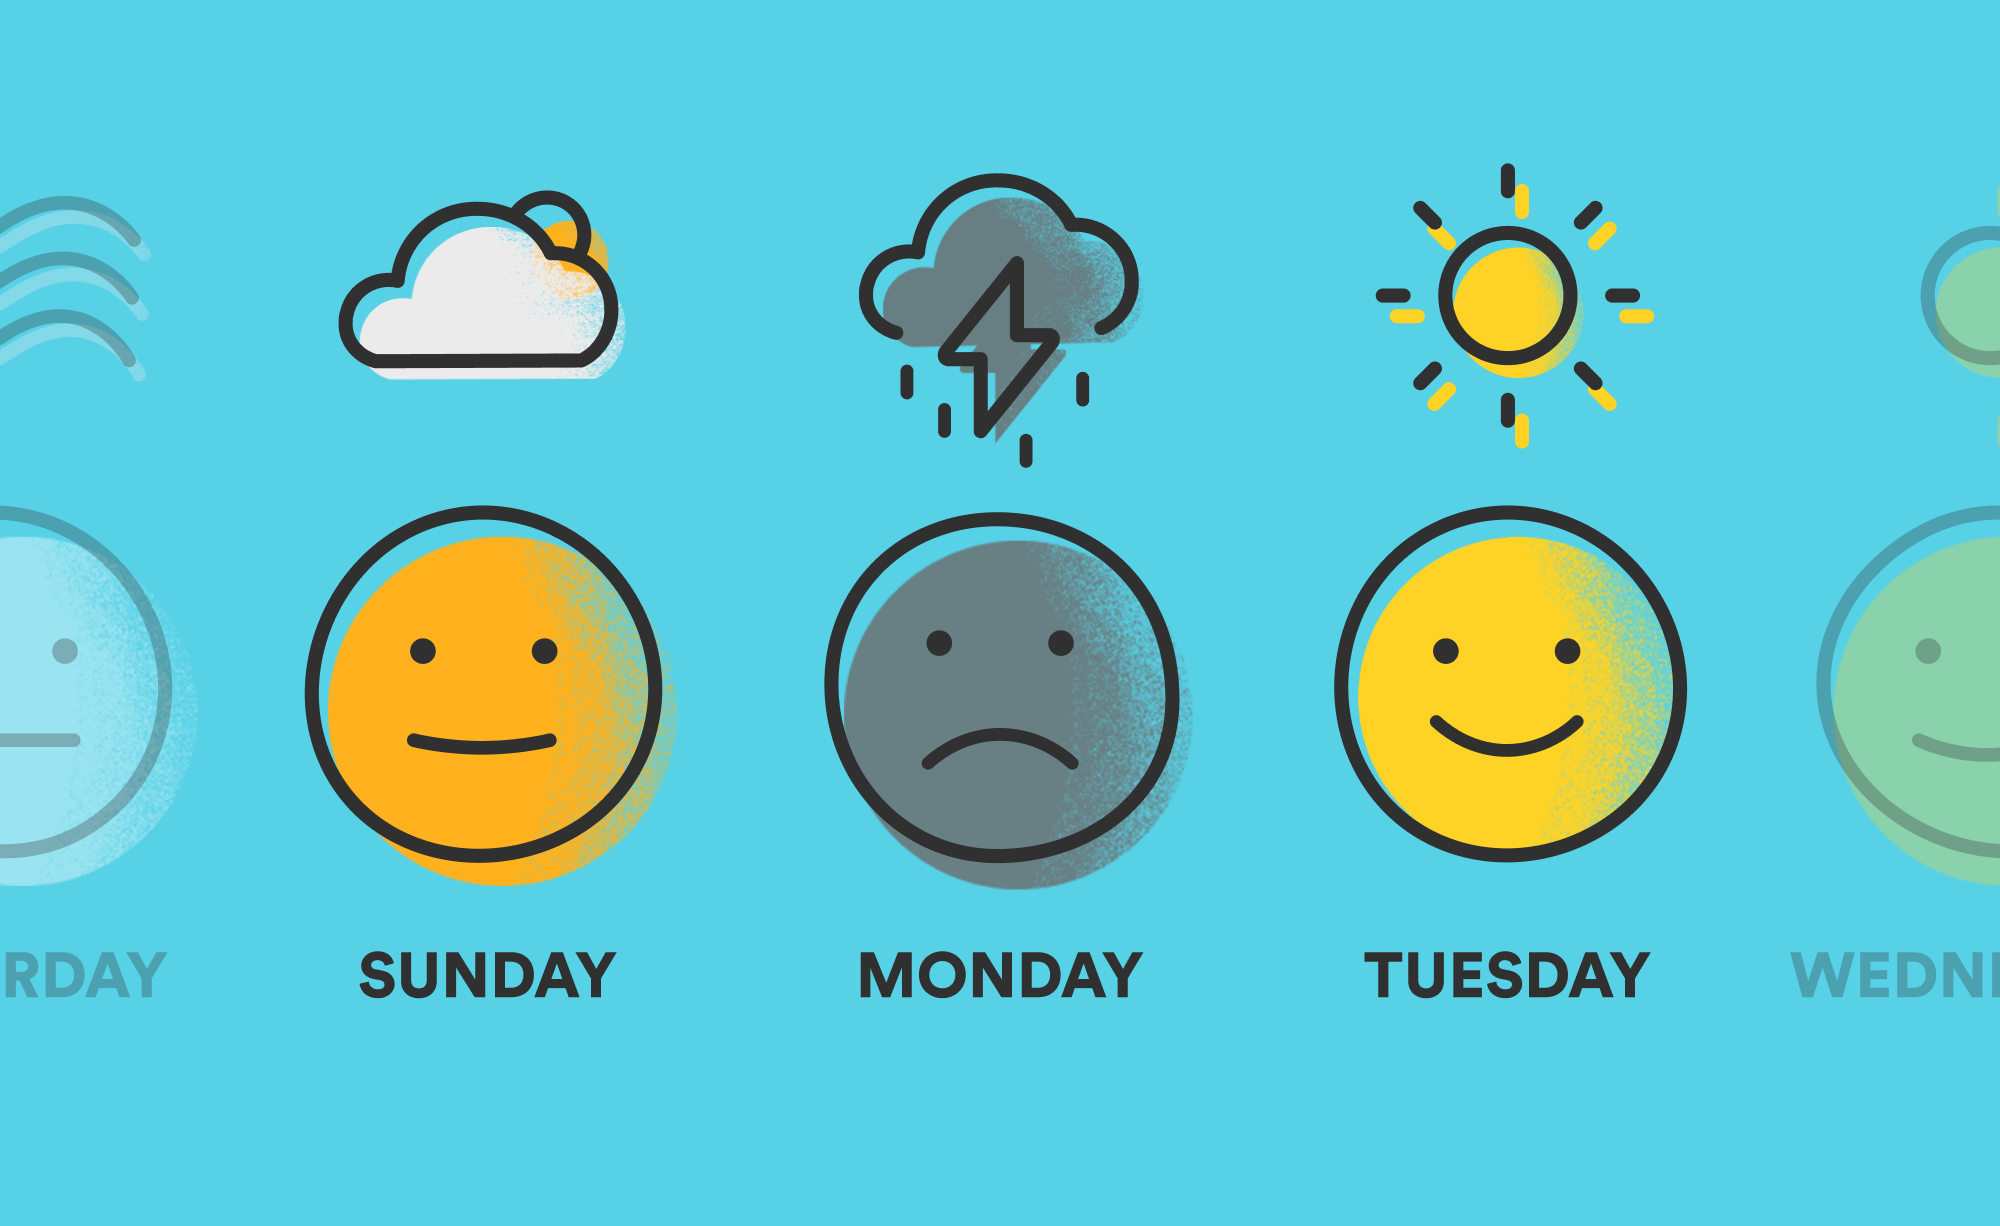 An illustration showing that our mood and mental health can vary from day to day